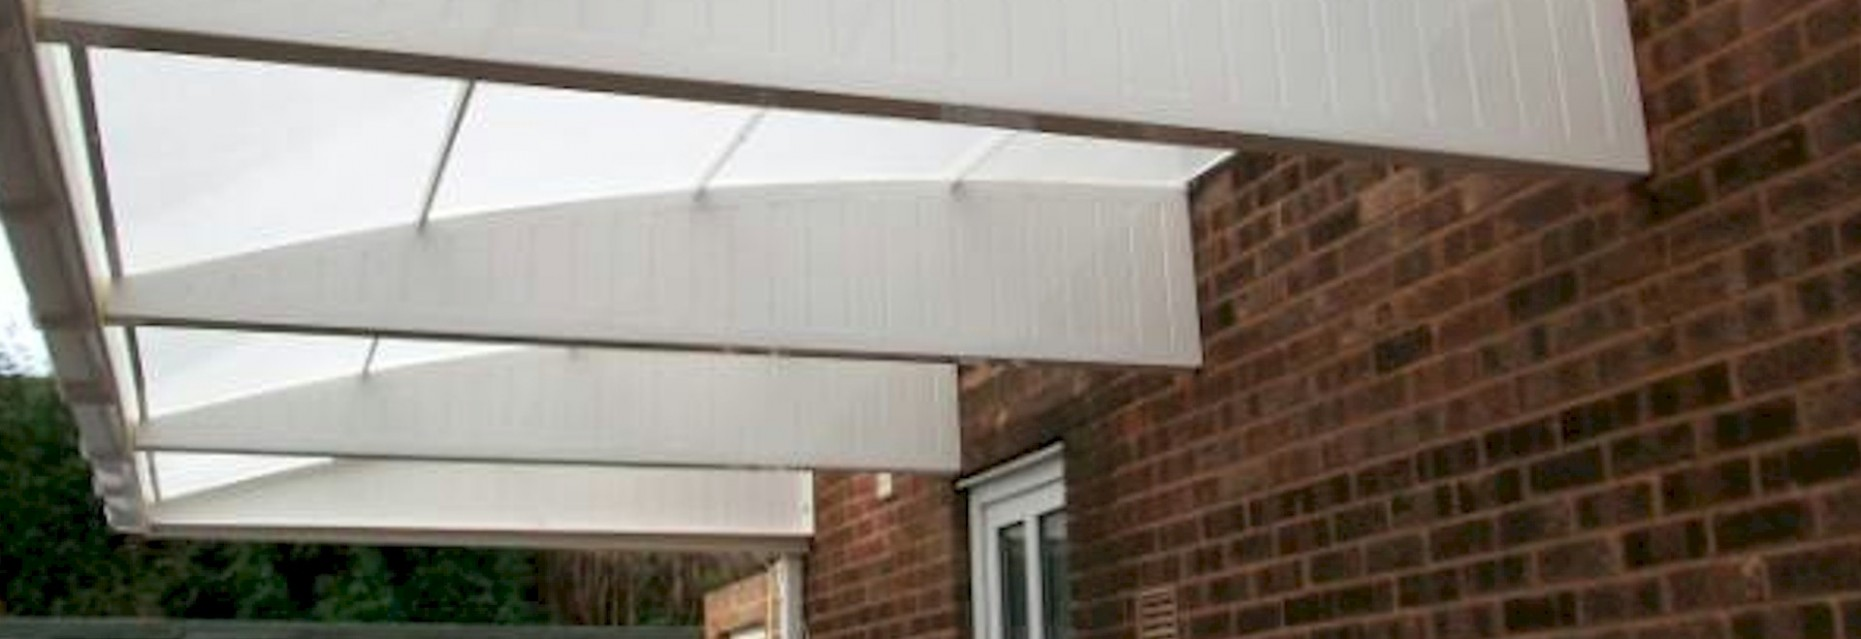 Attending Carport Suppliers Uk Can Be A Disaster If You Forget These 9 Rules | carport suppliers uk